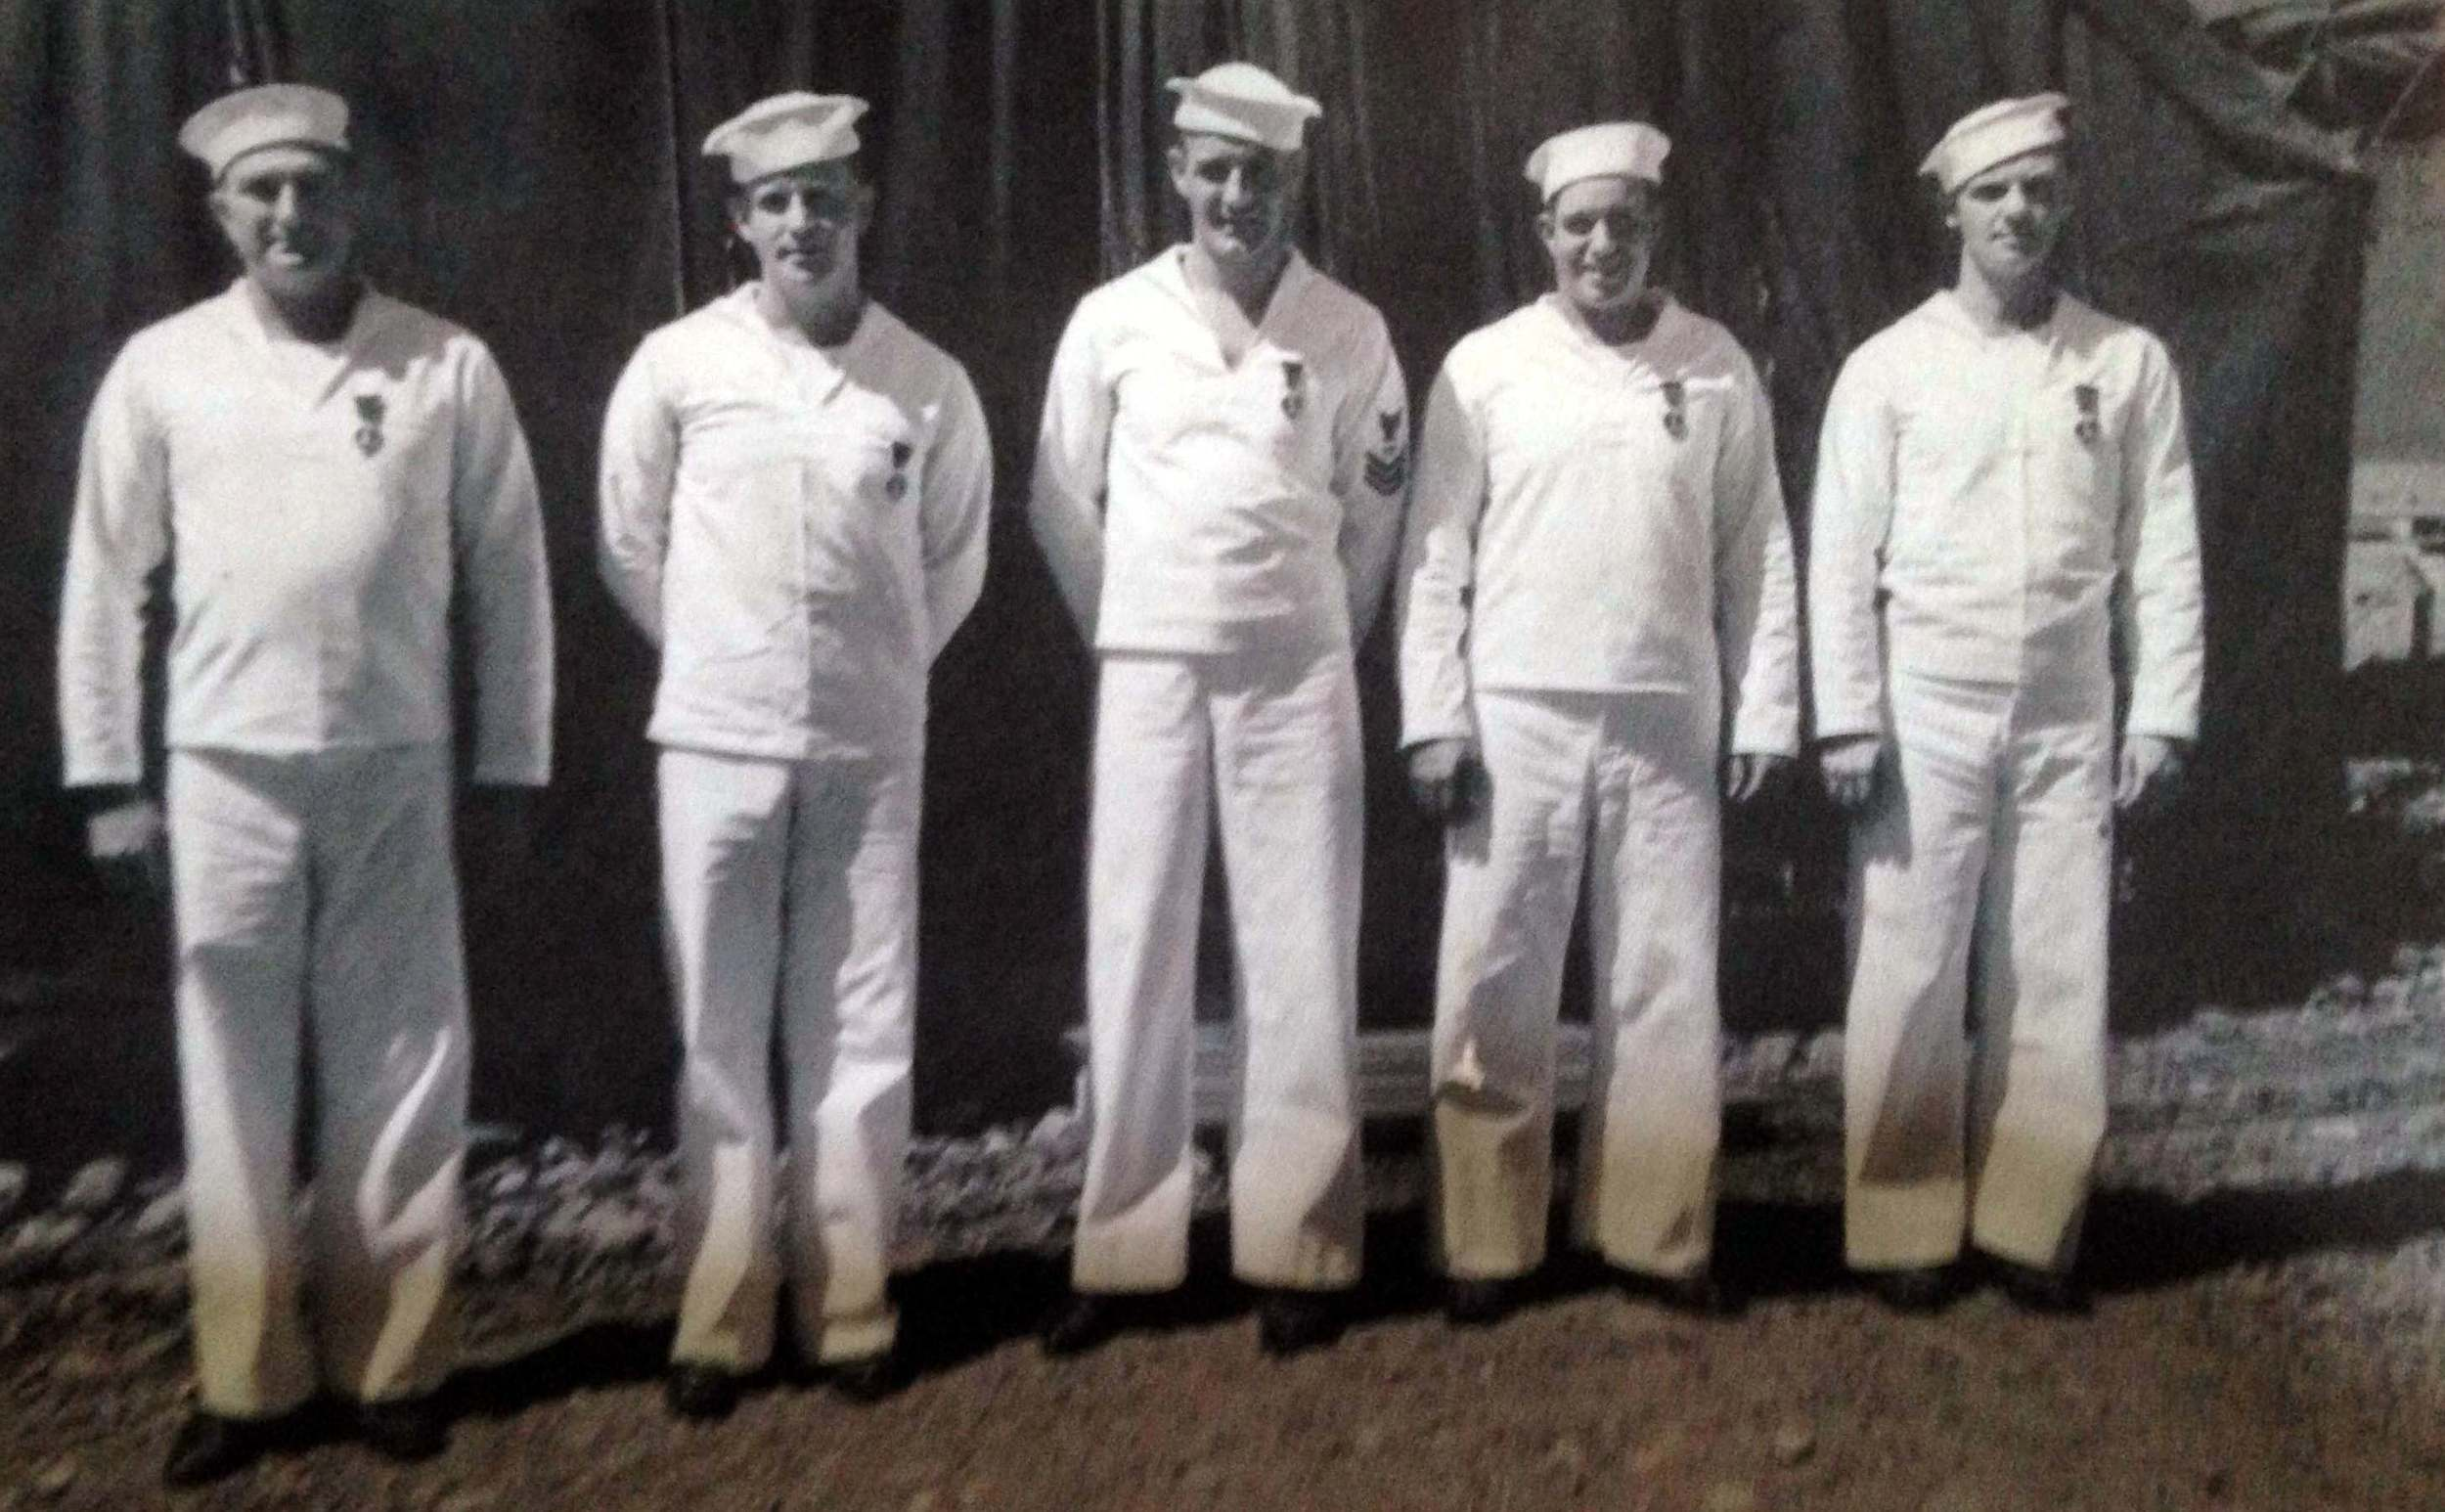 Jack (far right) and his comrades that survived the daisy cutter.